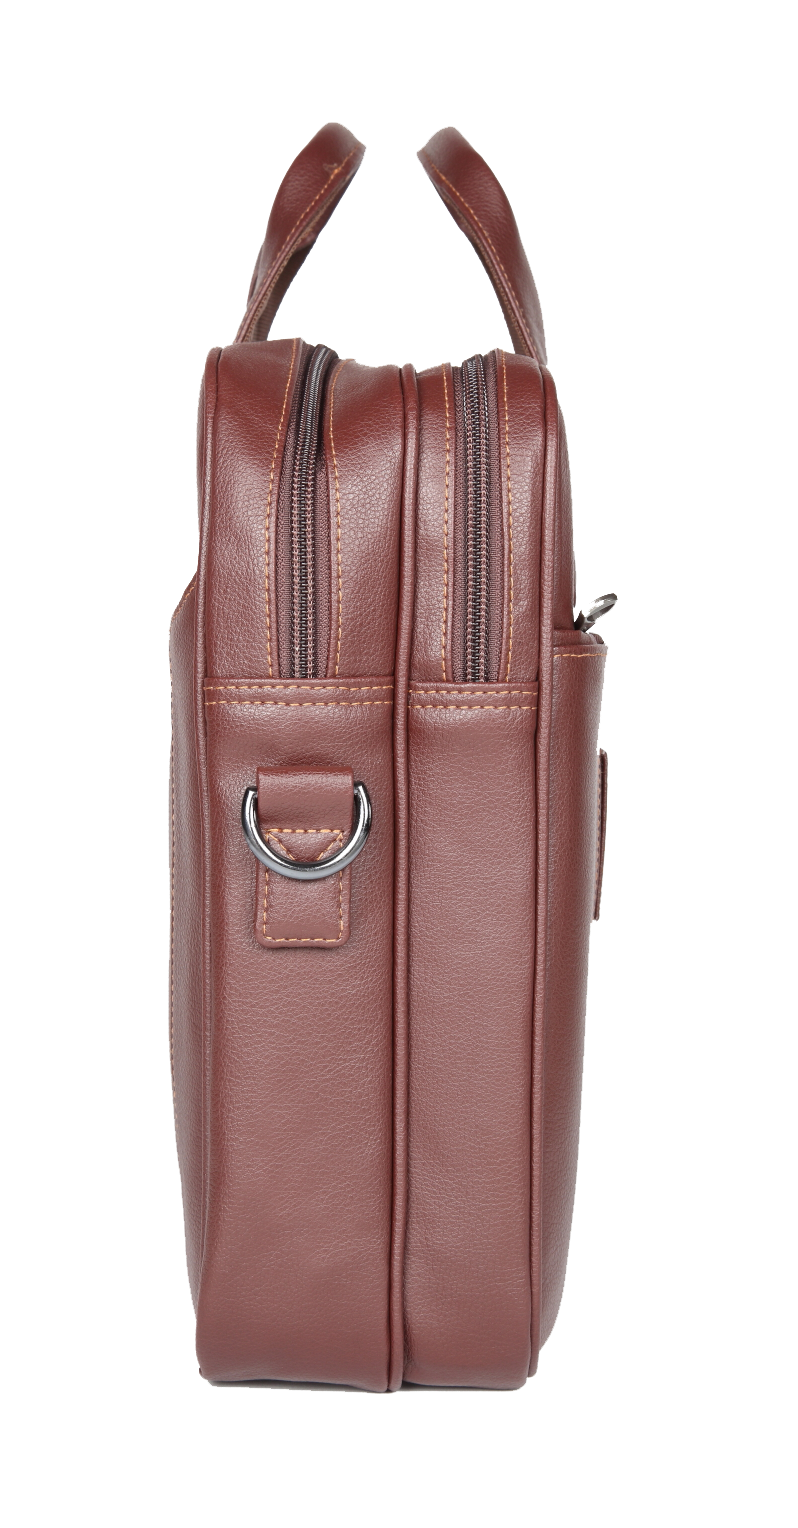 leather bags india